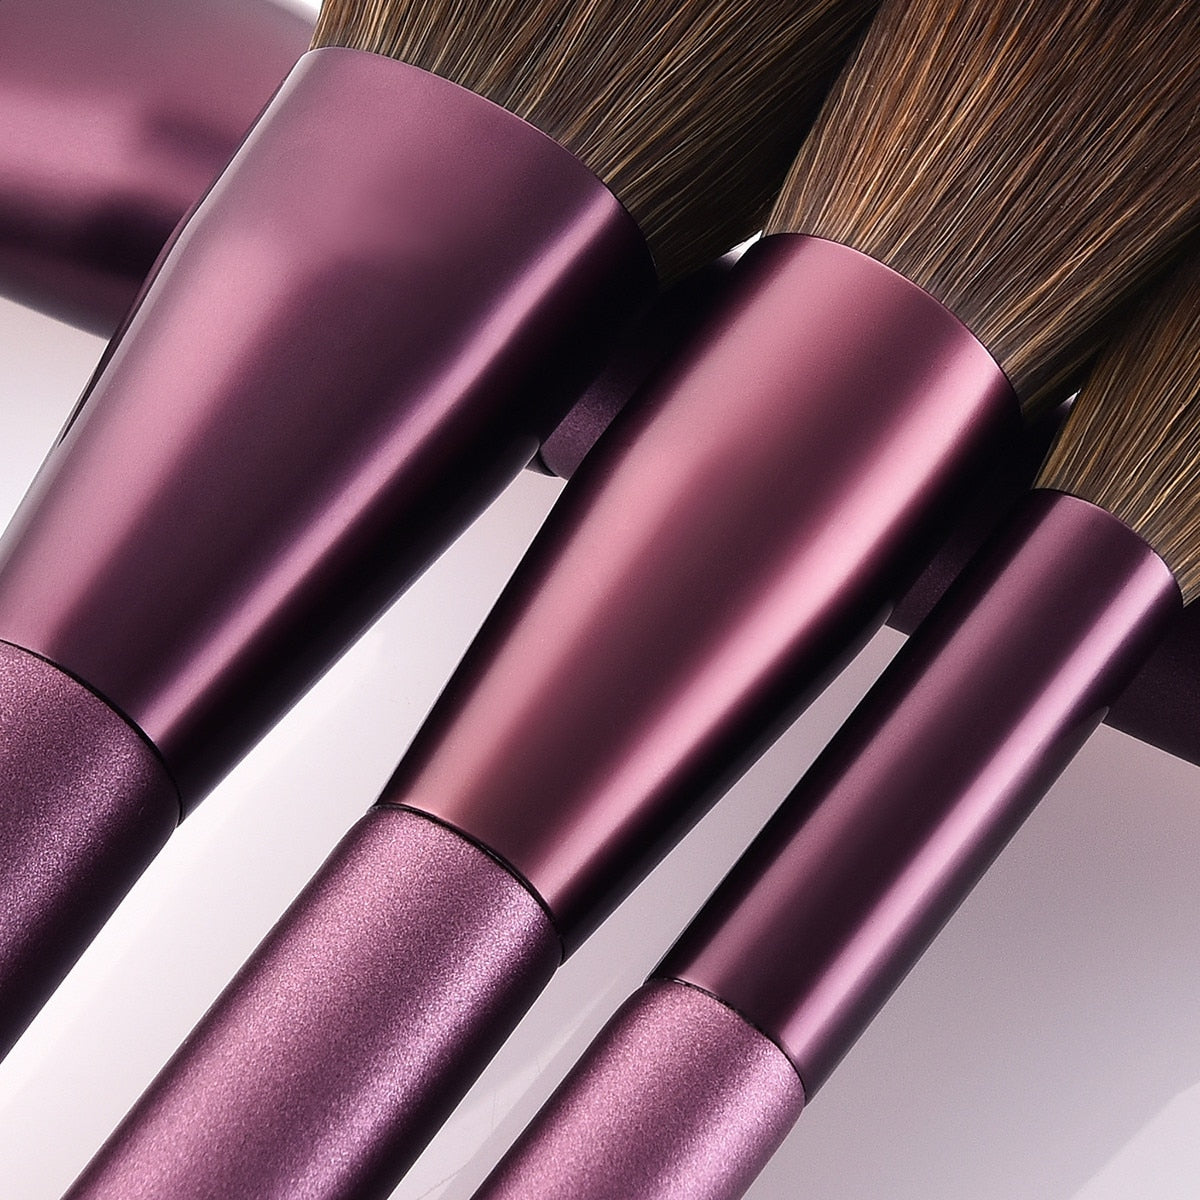 12pcs Purple Lilac Color Makeup Brushes Eye Shadow Concealer Foundation Eyebrow Blush Bronzer Lip Powder Beauty Makeup Brush Set